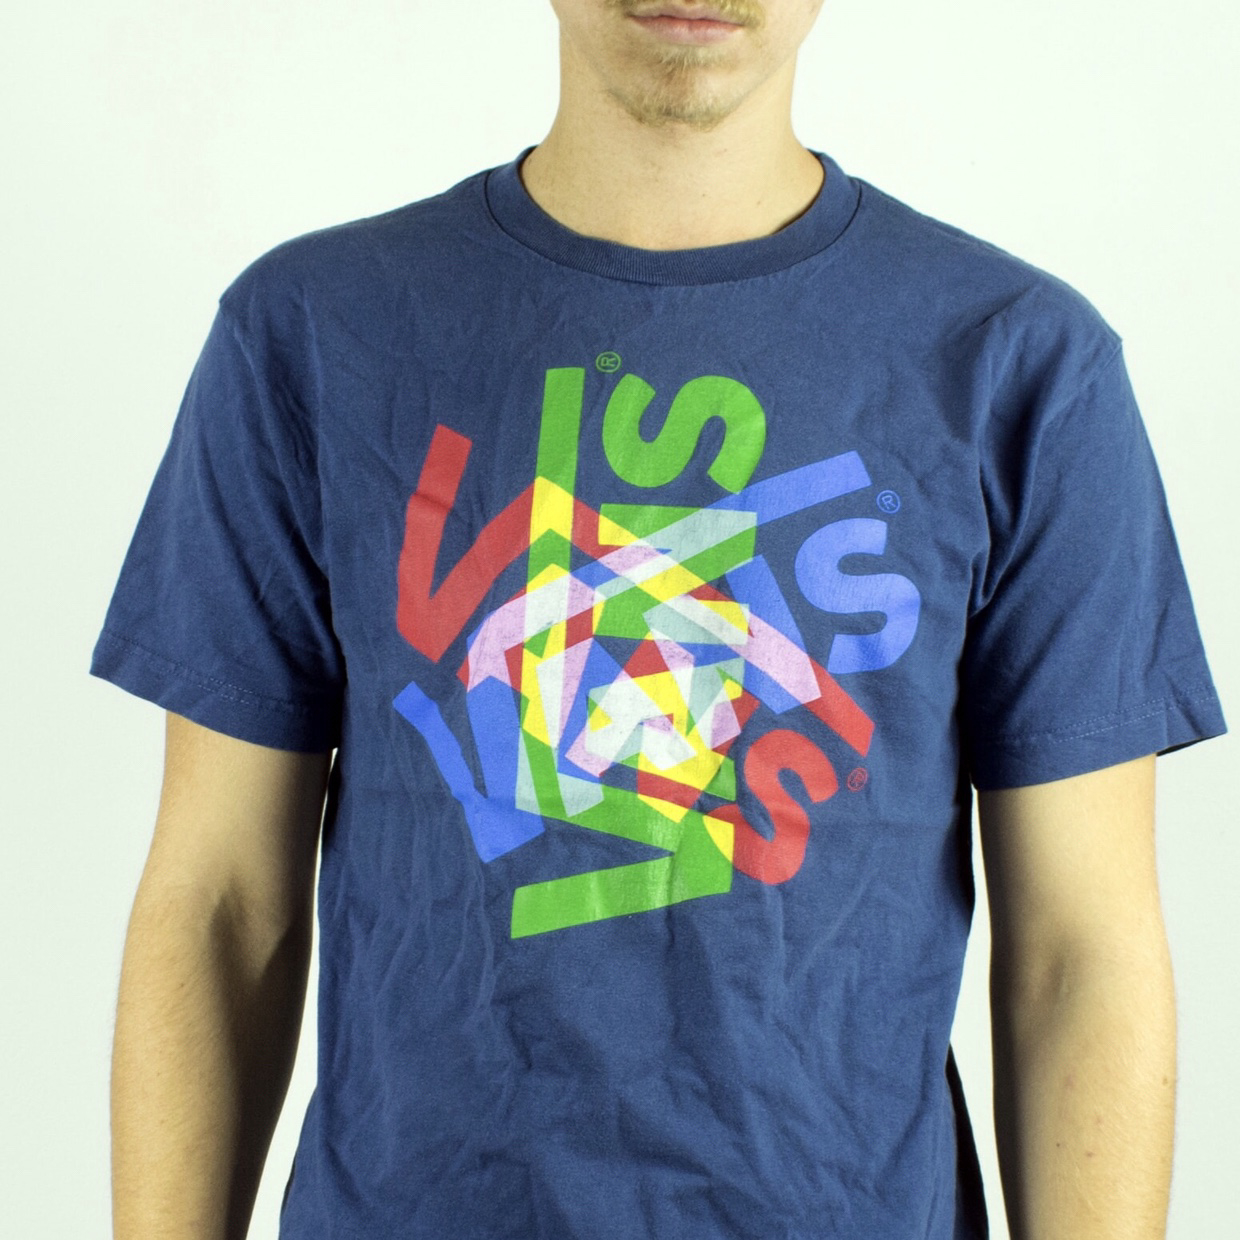 Unisex Vintage Vans t-shirt in blue has spellouts on the front size M